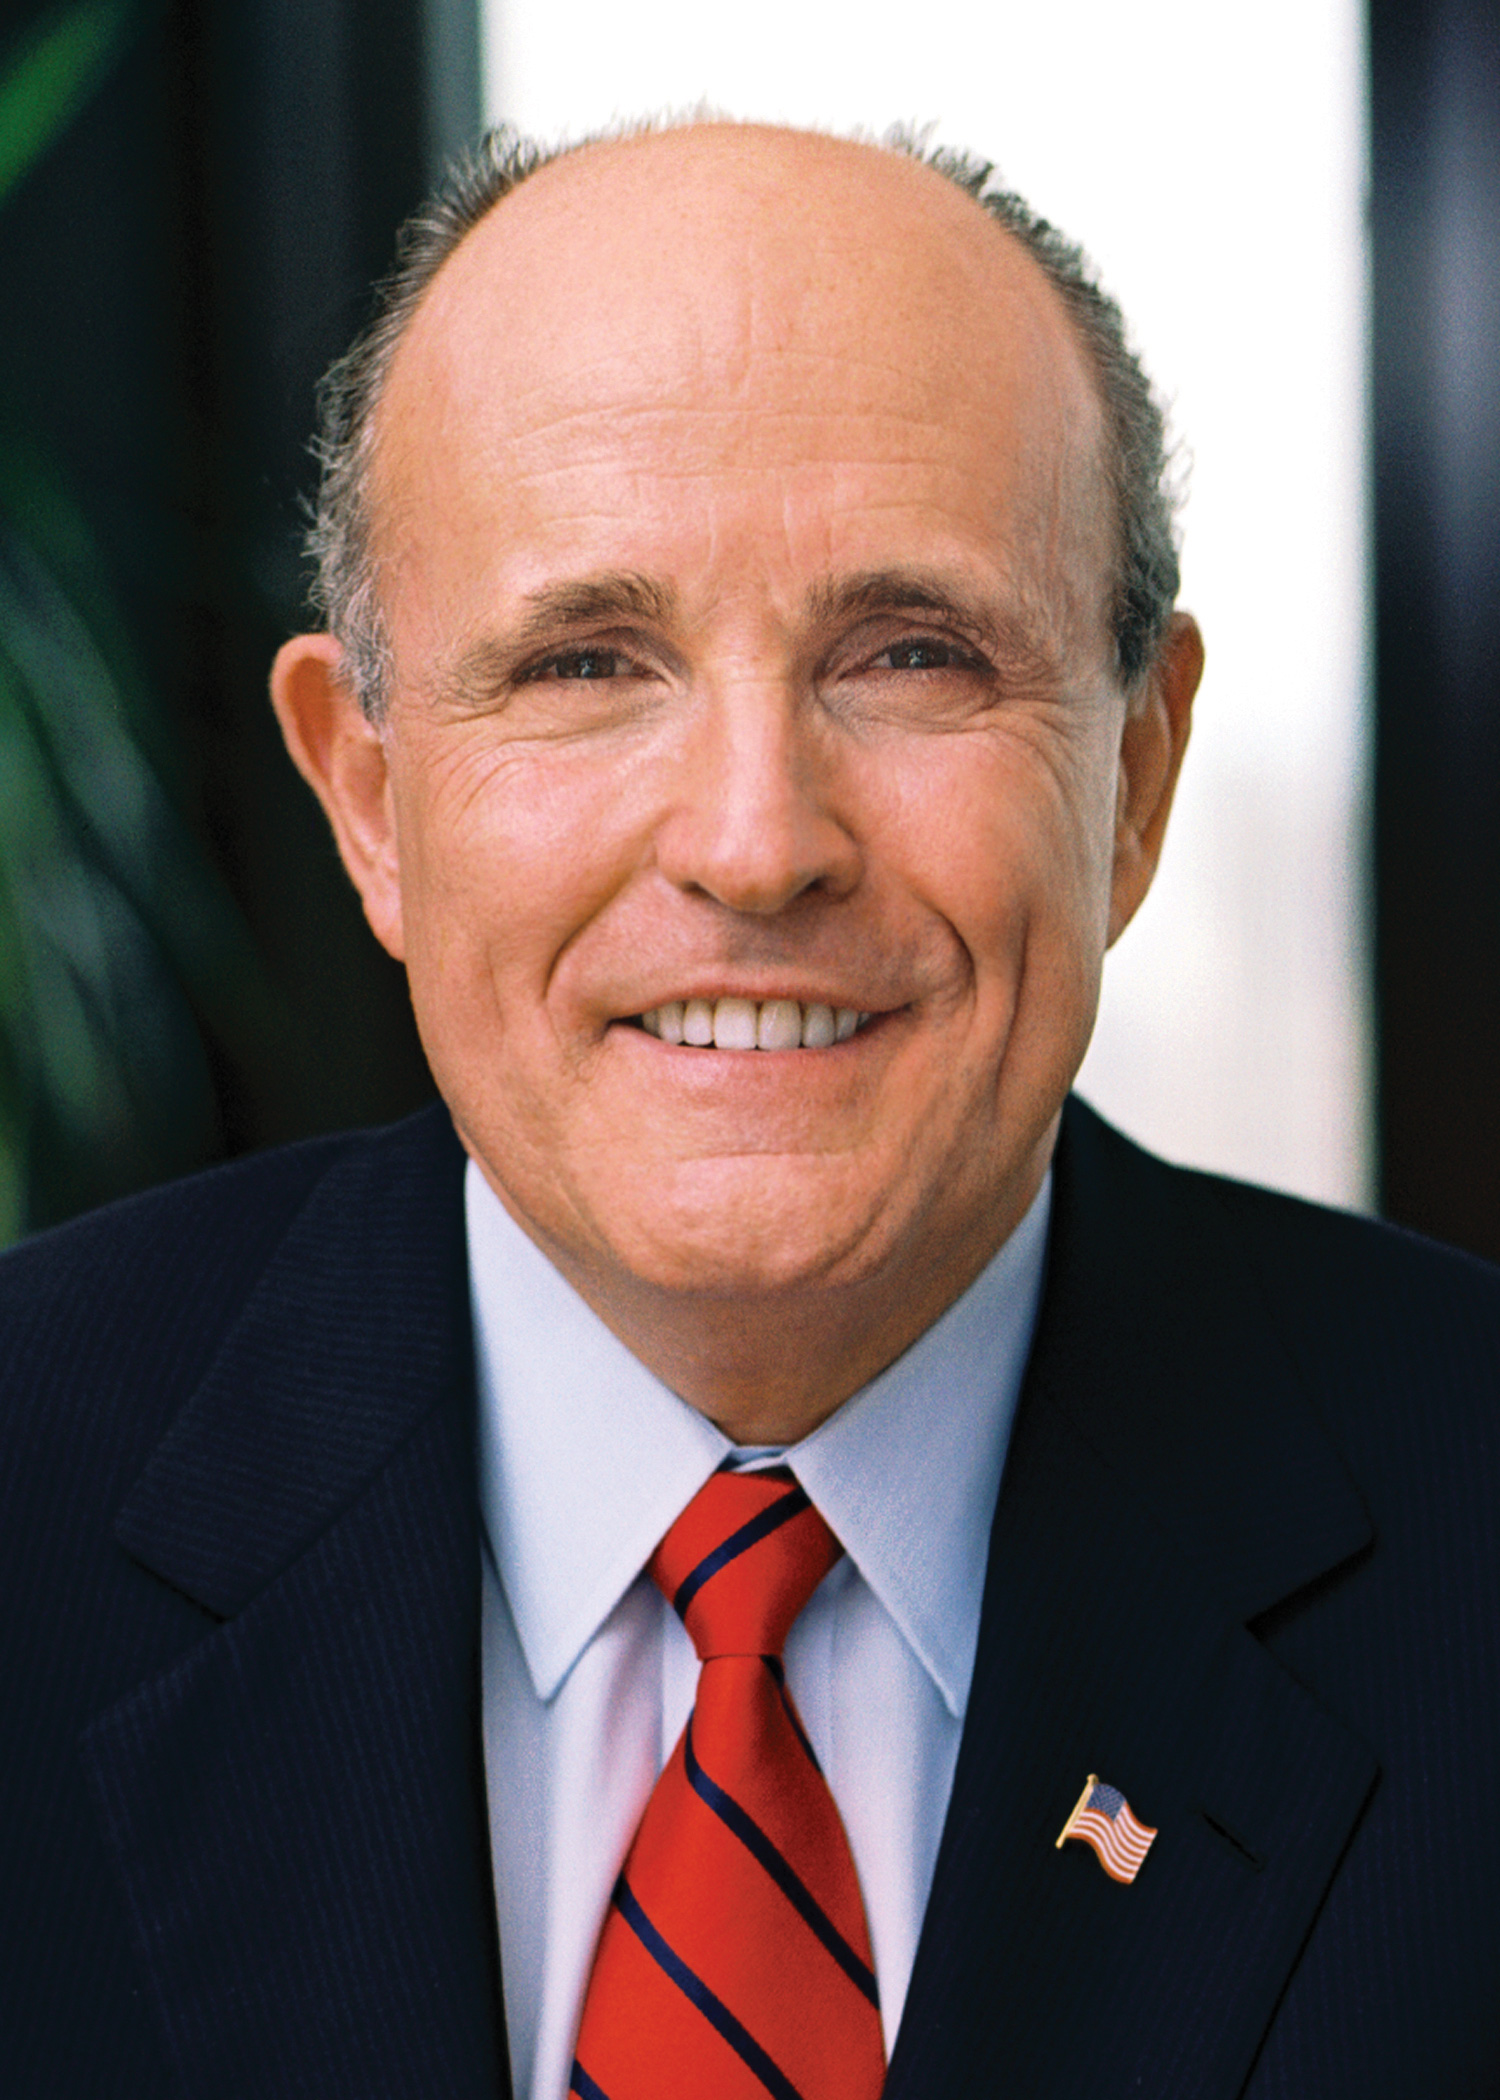 UNT to begin 2016-17 Kuehne Speaker Series with Rudy Giuliani discussing leadership in crisis